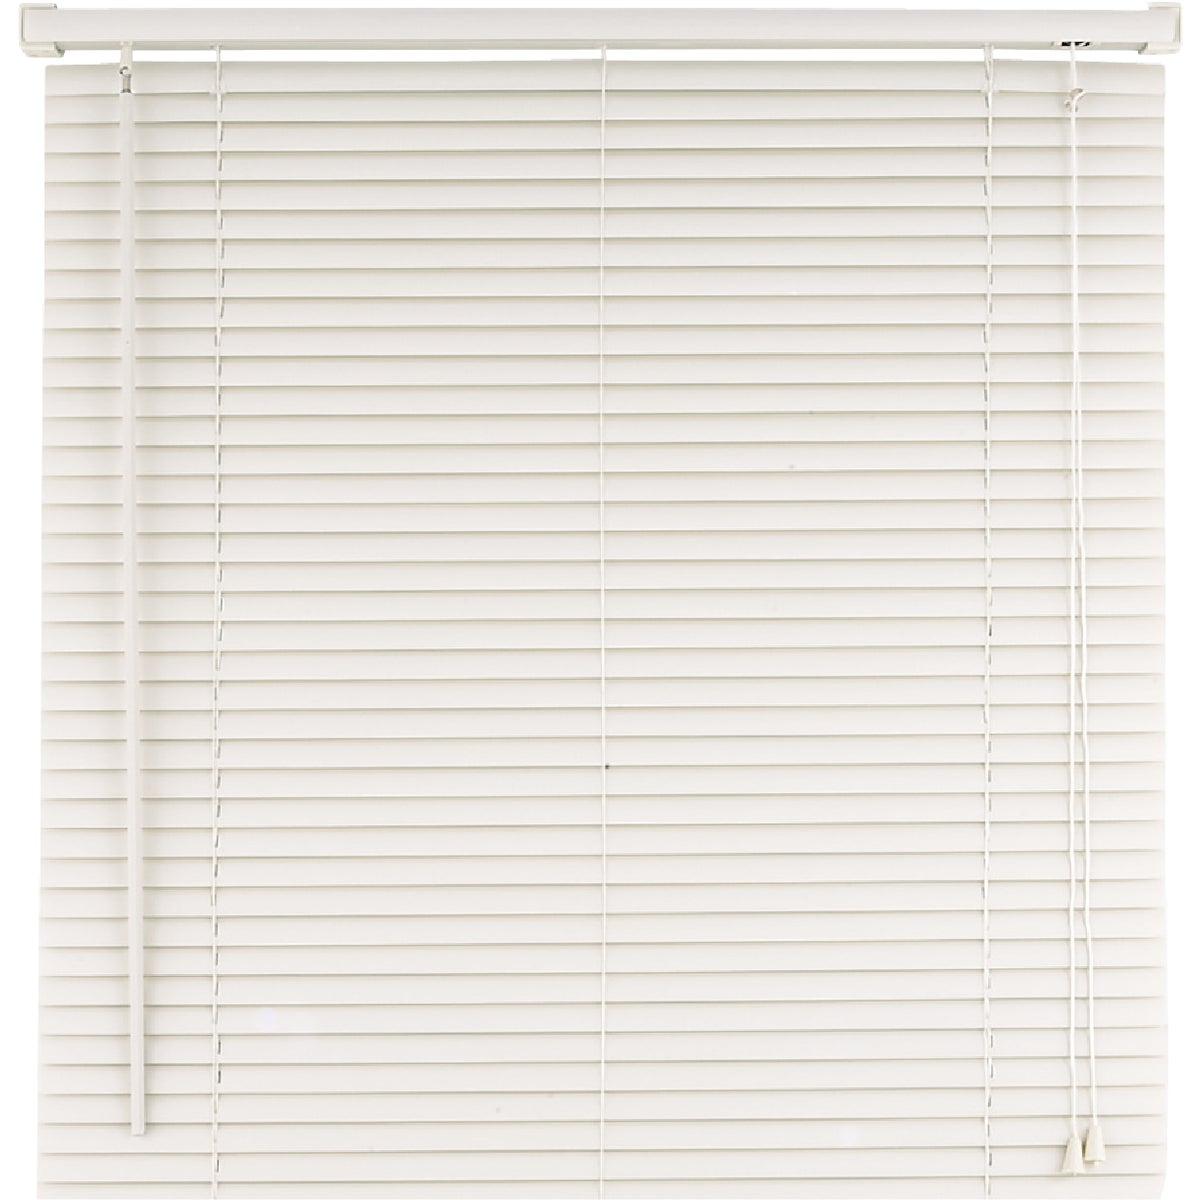 23X72 WHITE VINYL BLIND - 2372W by Lotus Wind Incom